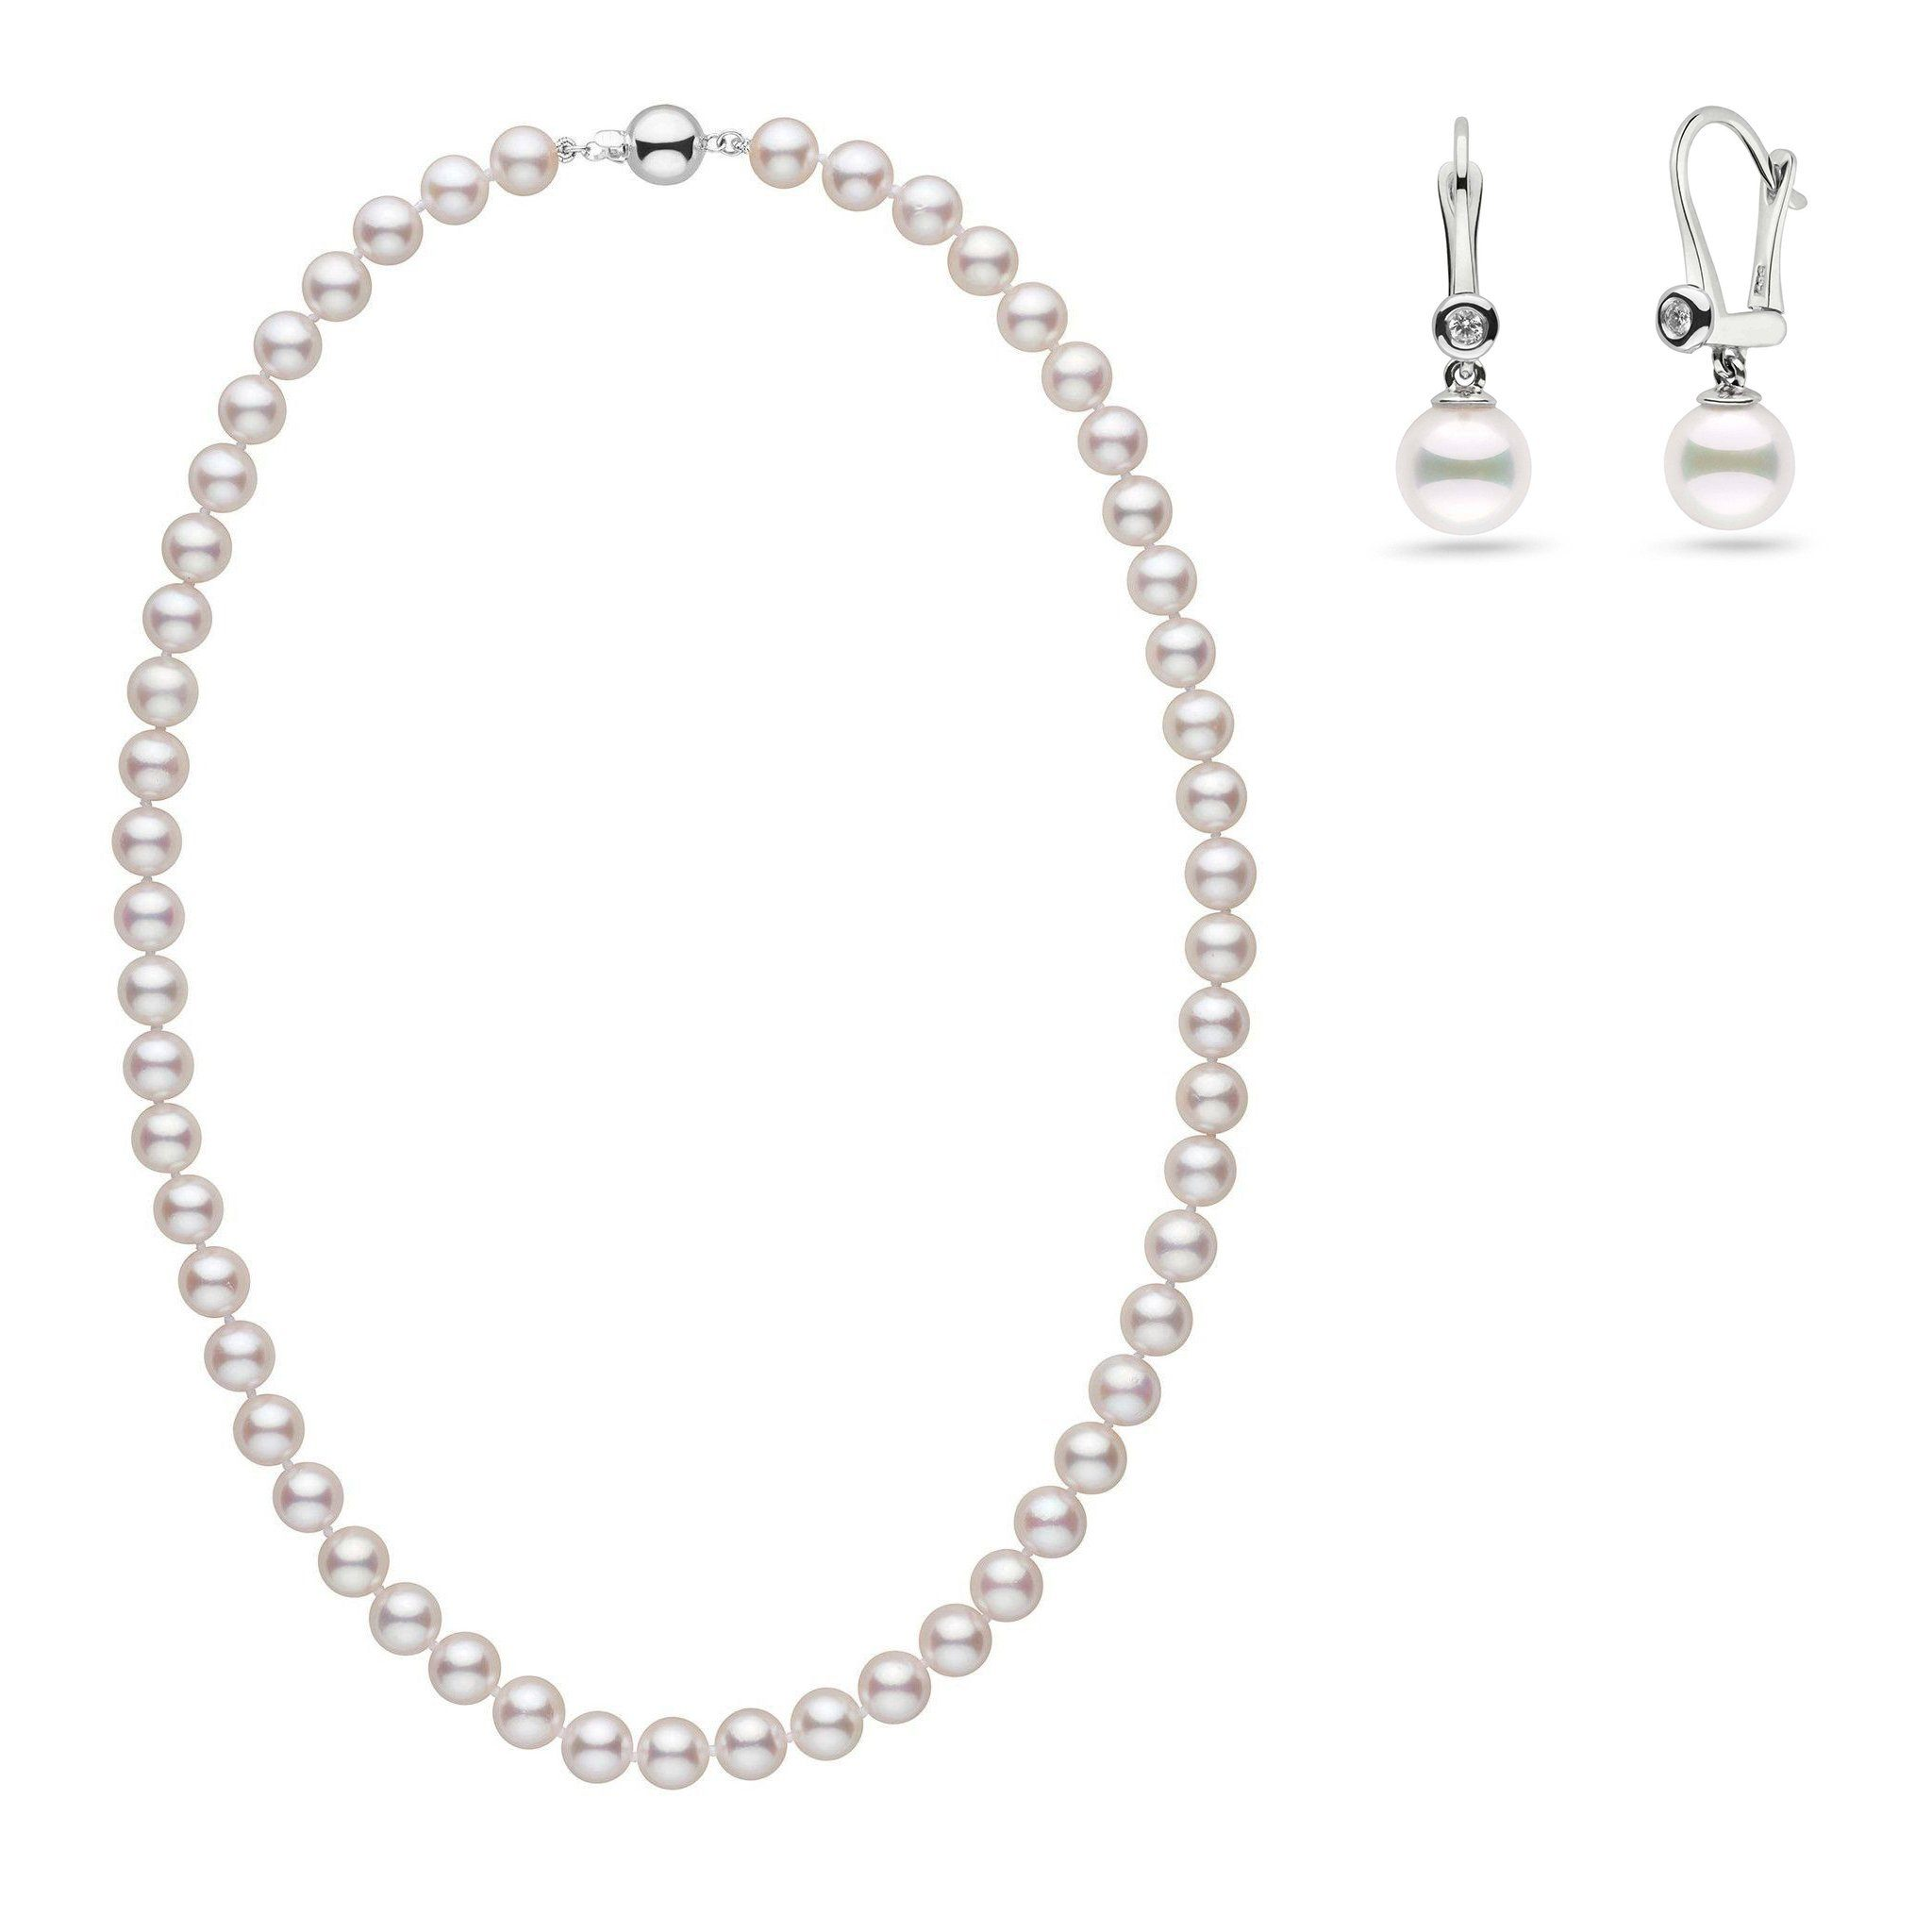 7.5-8.0 mm AAA White Akoya Pearl Necklace and Romantic Earring Set